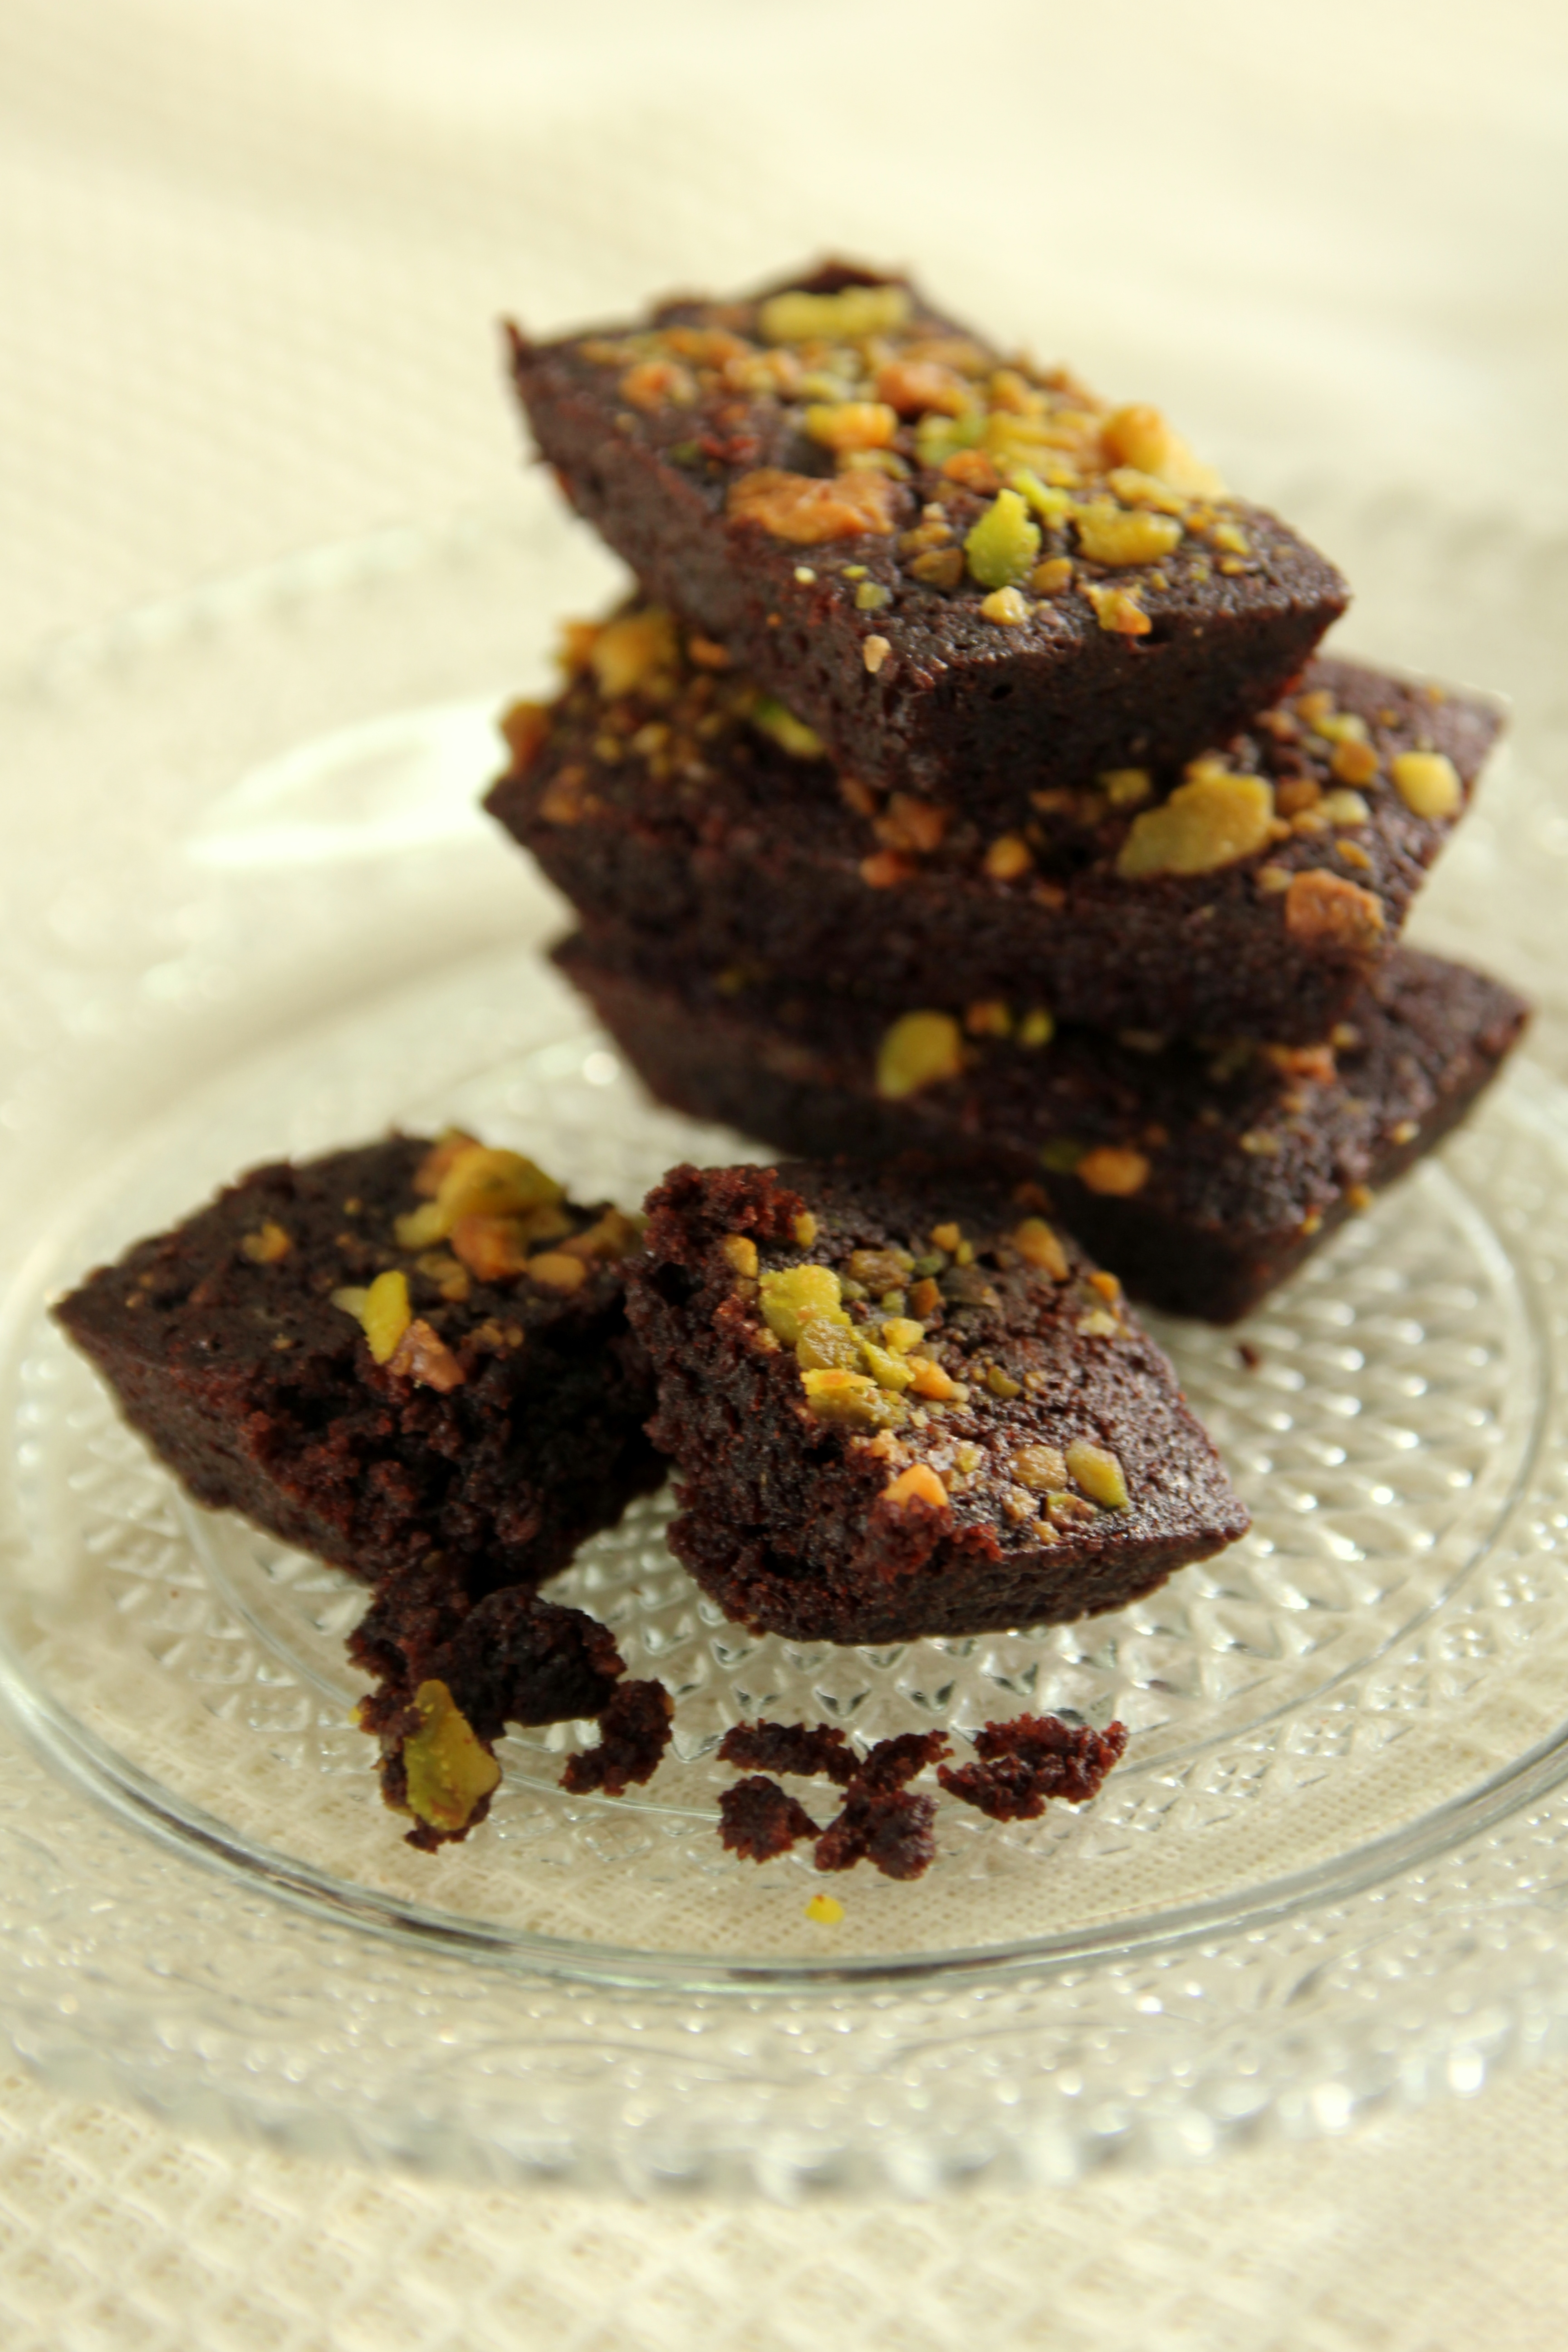 Chocolate Financiers with Pistachios